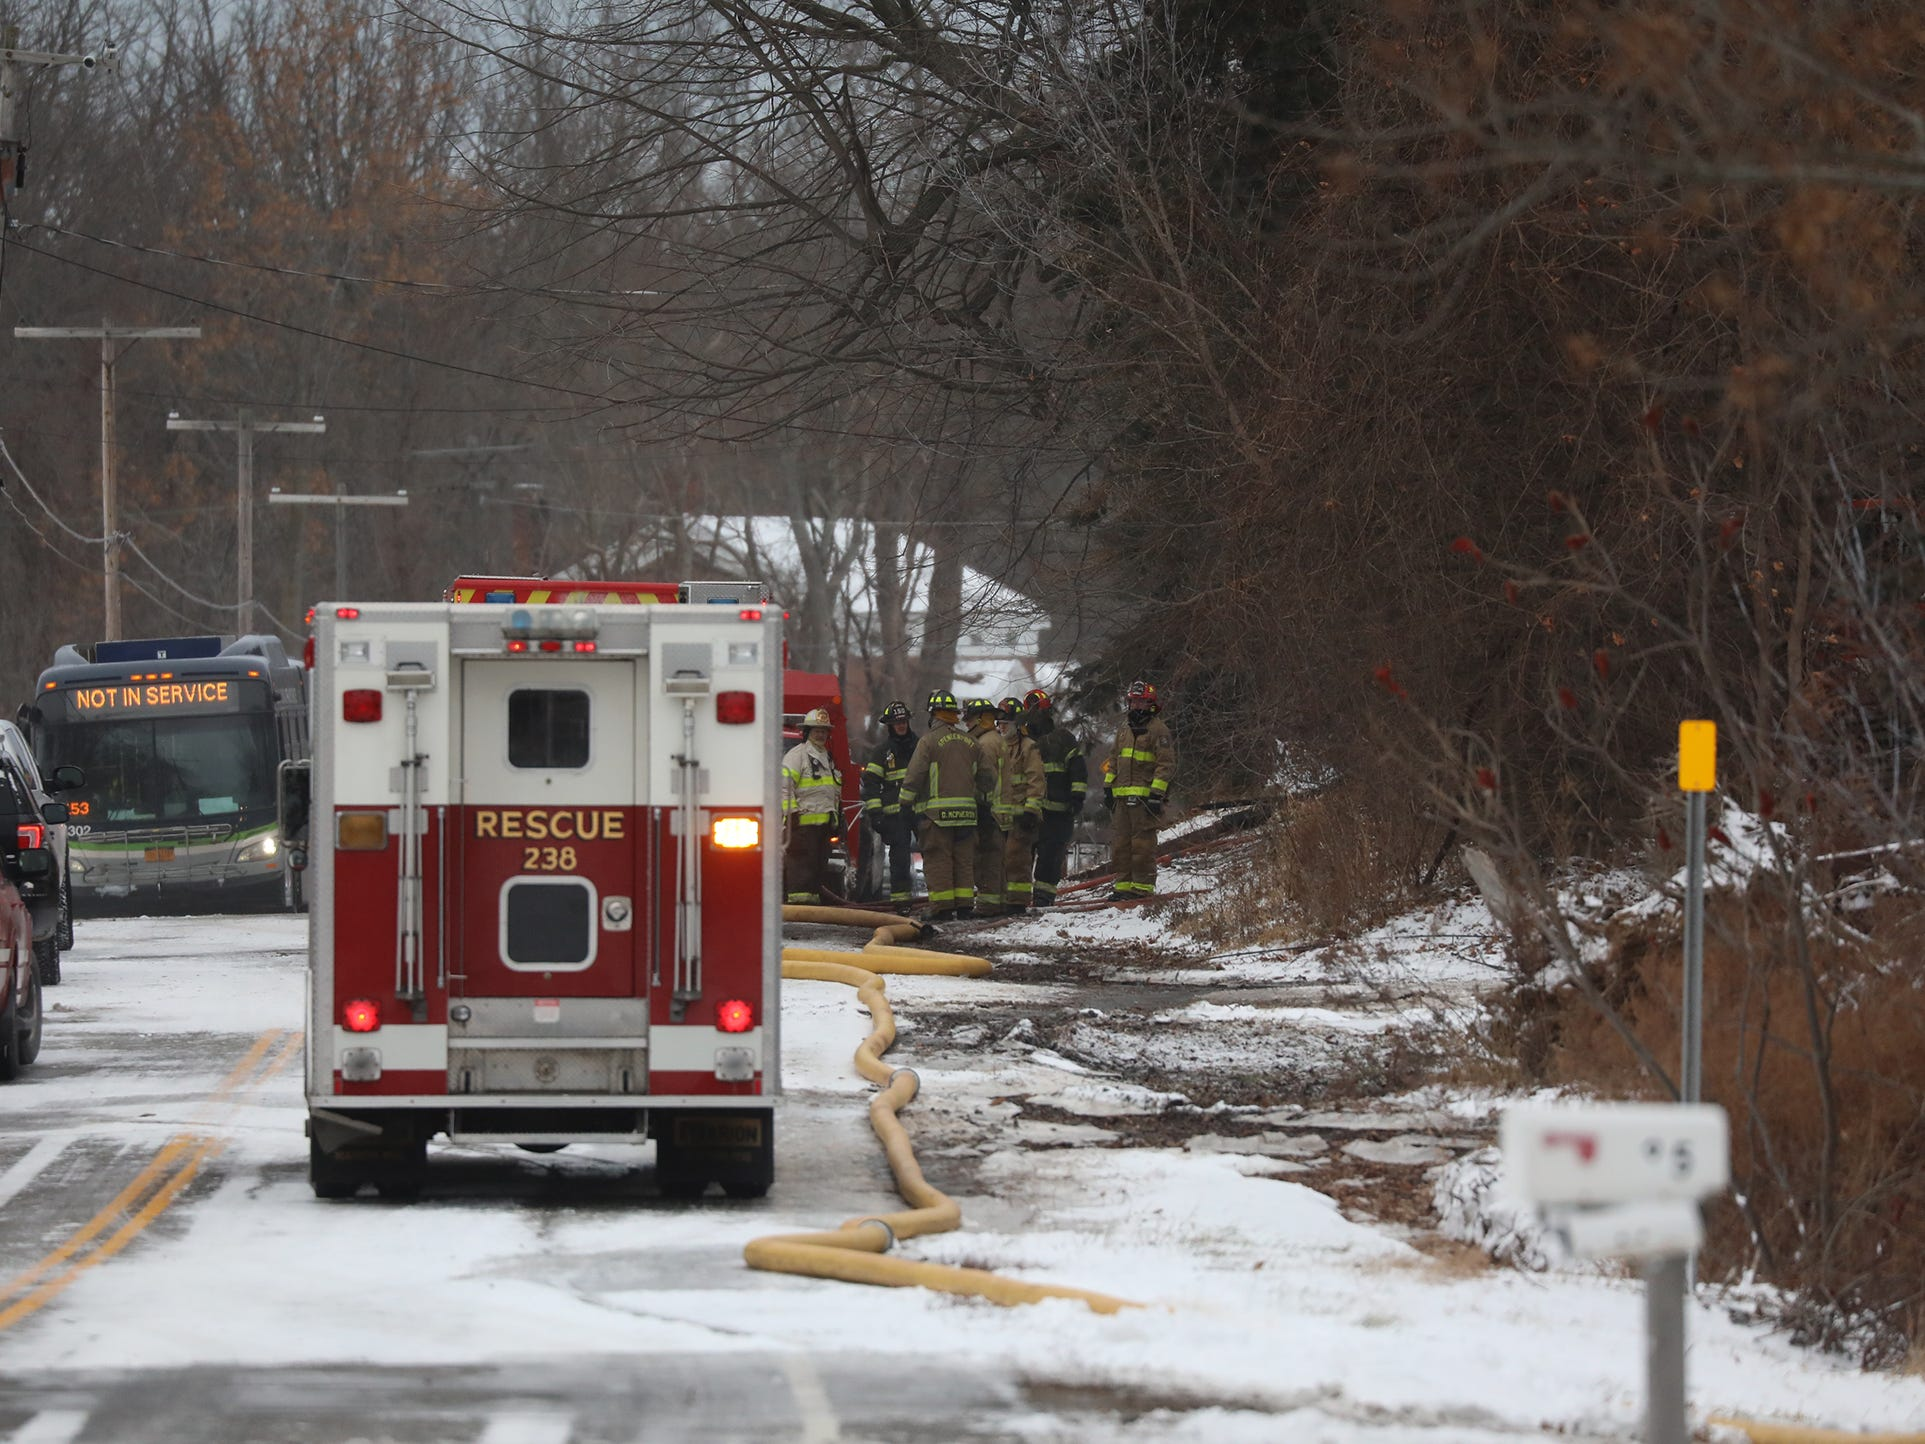 It took firefighters several hours to find the body of the resident who was reported to be still inside the home.